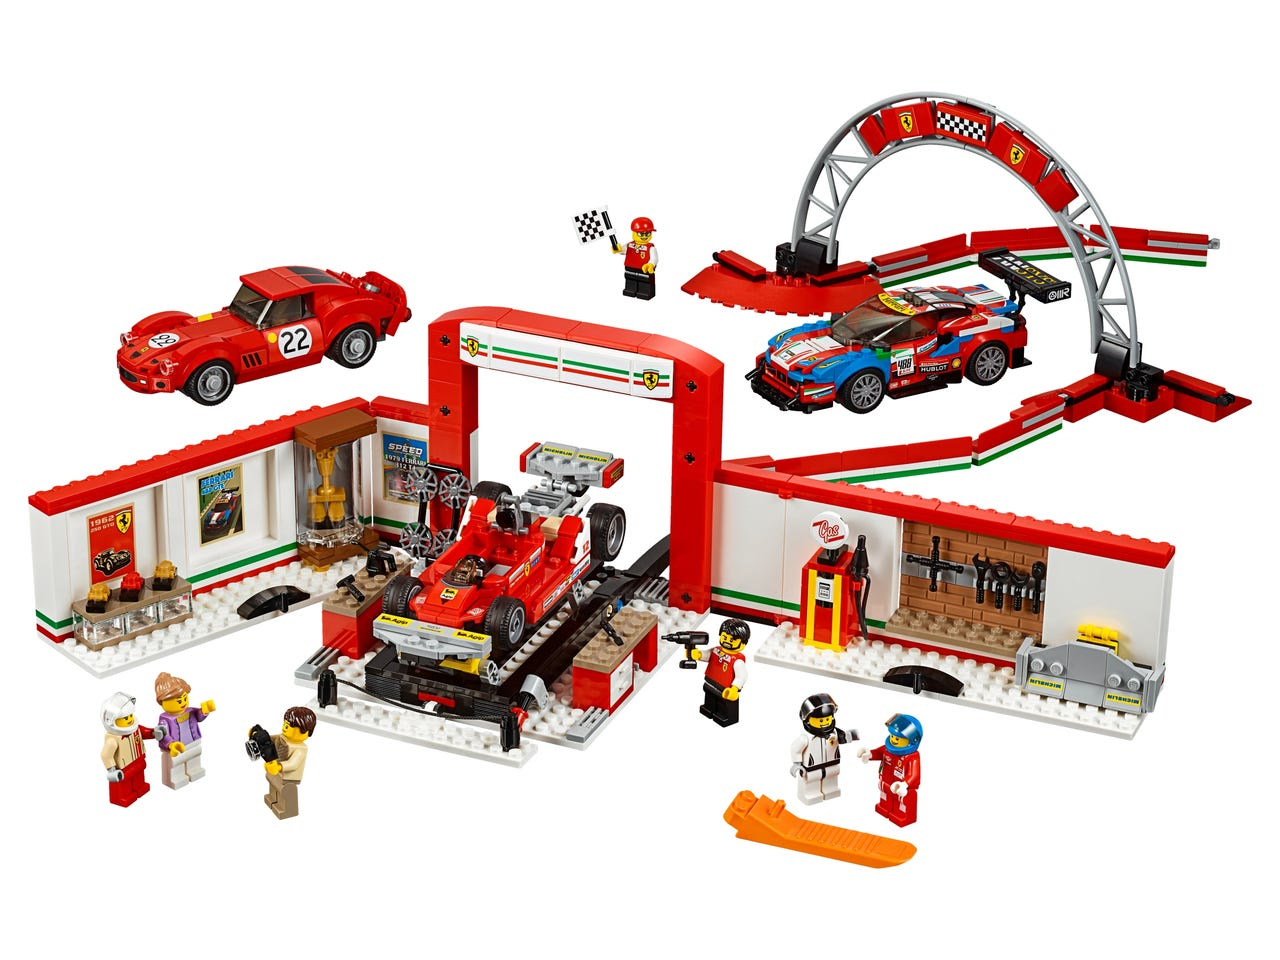 Ferrari Ultimate Garage 75889 Speed Champions Buy Online At The Official Lego Shop Us